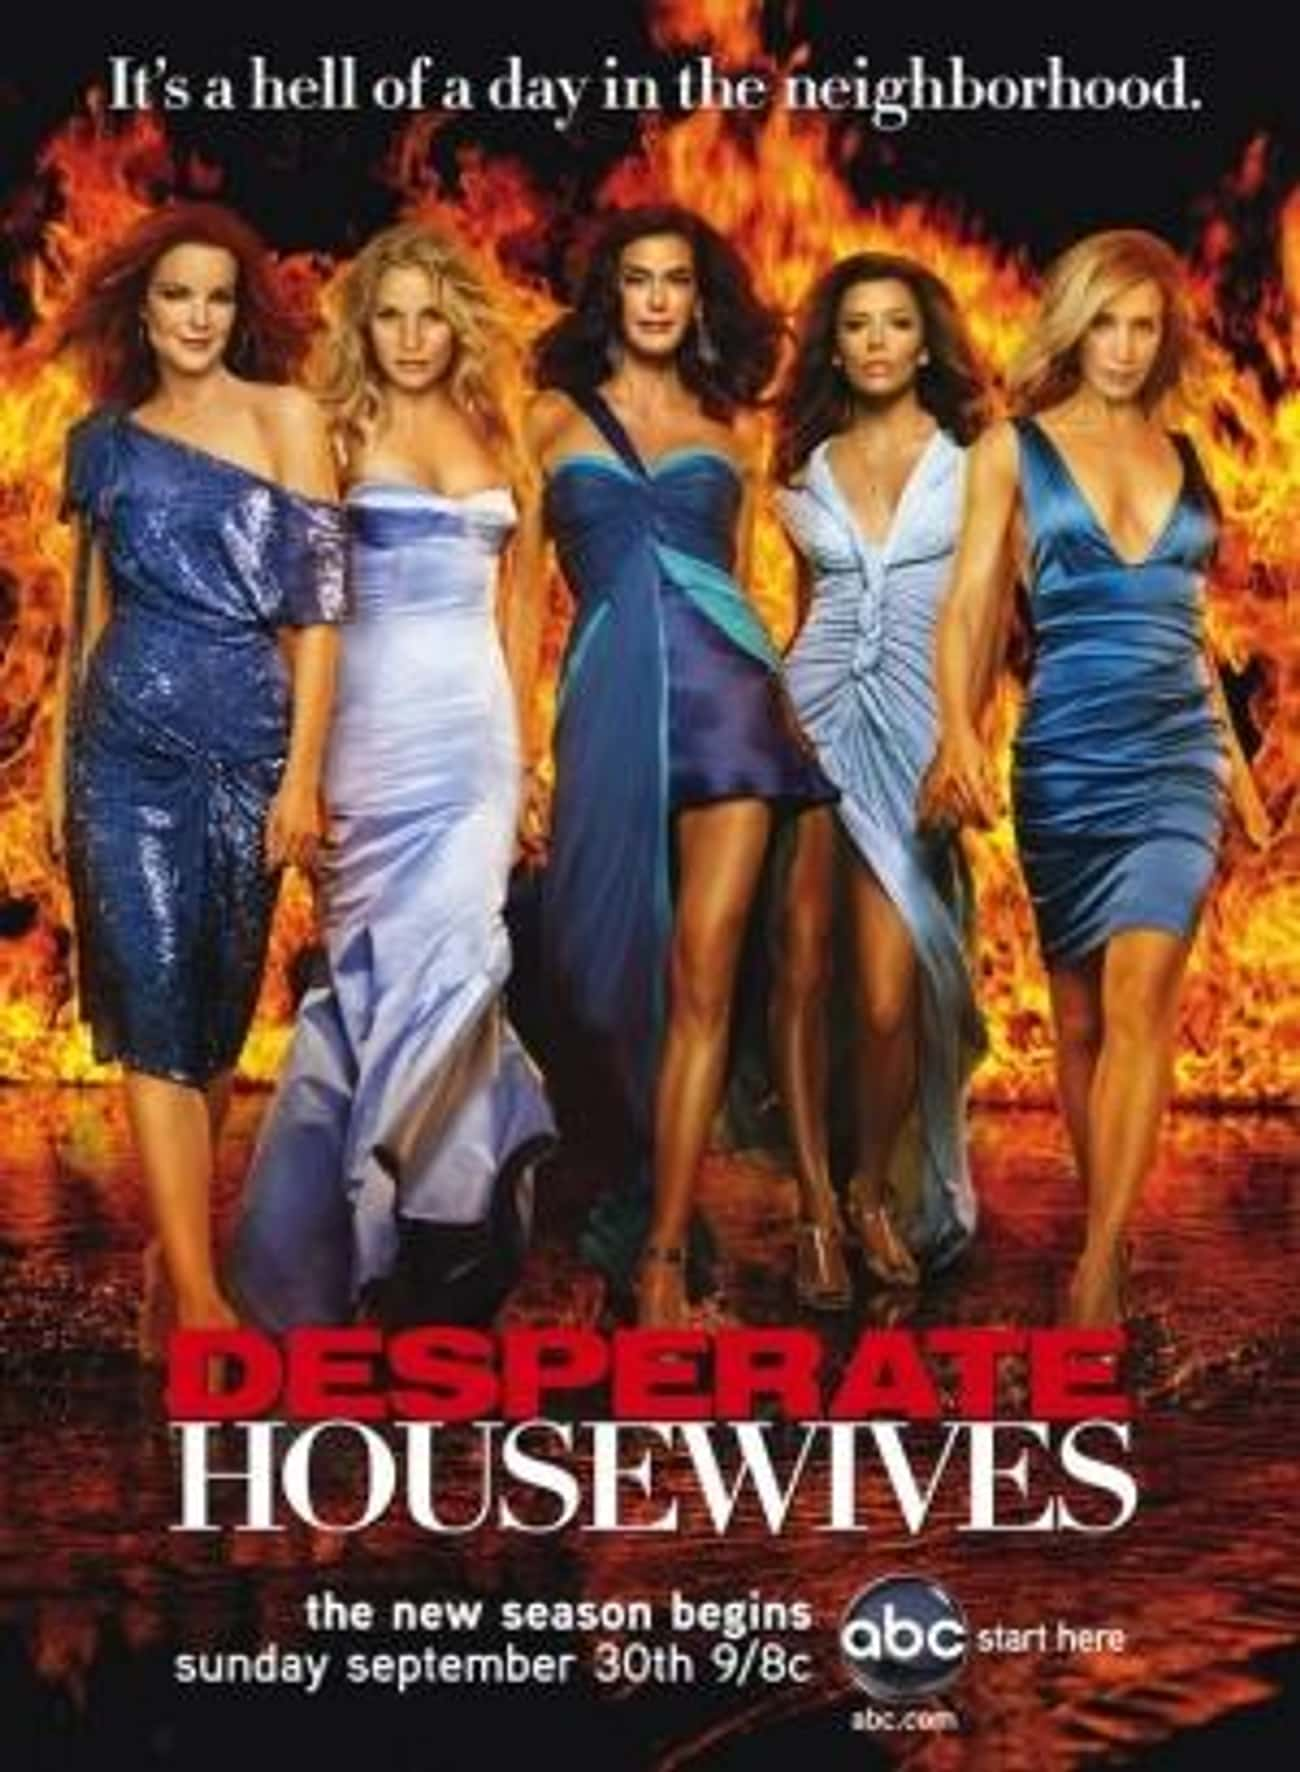 Desperate Housewives - Season  is listed (or ranked) 1 on the list The Best Seasons of Desperate Housewives